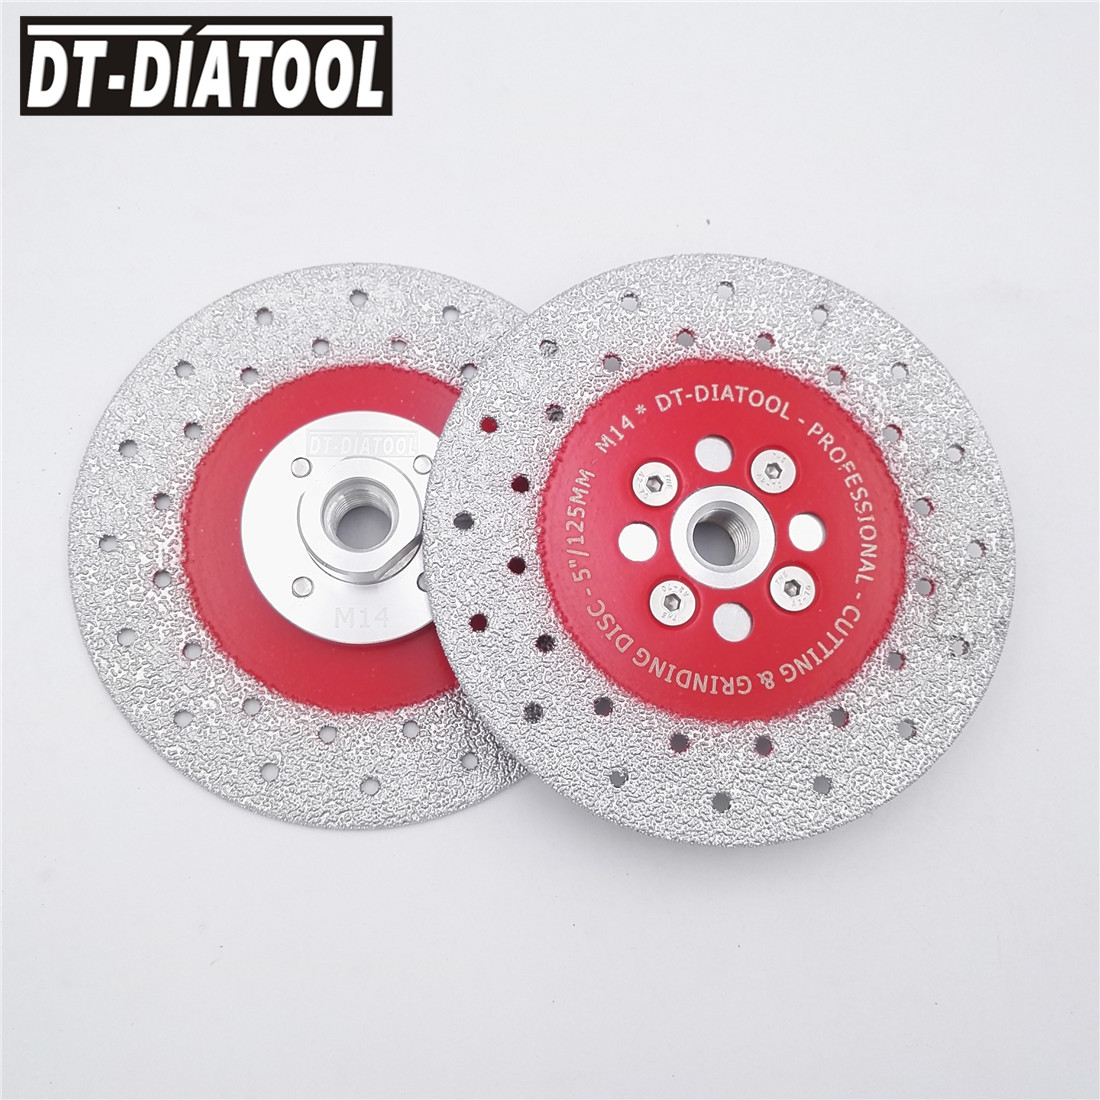 2pcs 125mm Double Sided Vacuum Brazed Diamond Cutting Disc blade Grinding wheel M14 thread multi purpose high quality long life